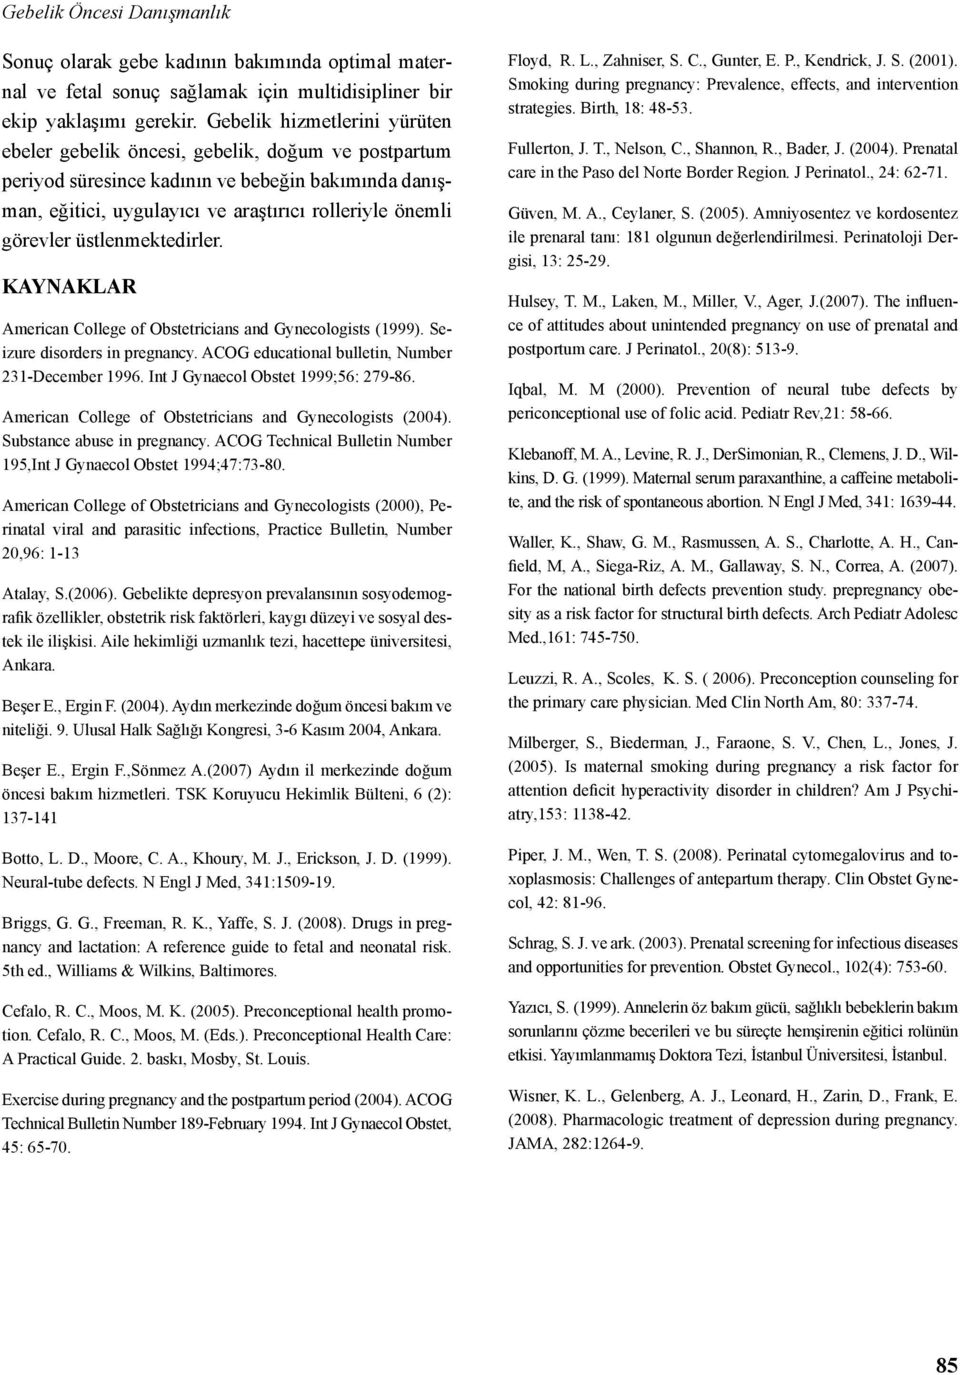 üstlenmektedirler. KAYNAKLAR American College of Obstetricians and Gynecologists (1999). Seizure disorders in pregnancy. ACOG educational bulletin, Number 231-December 1996.